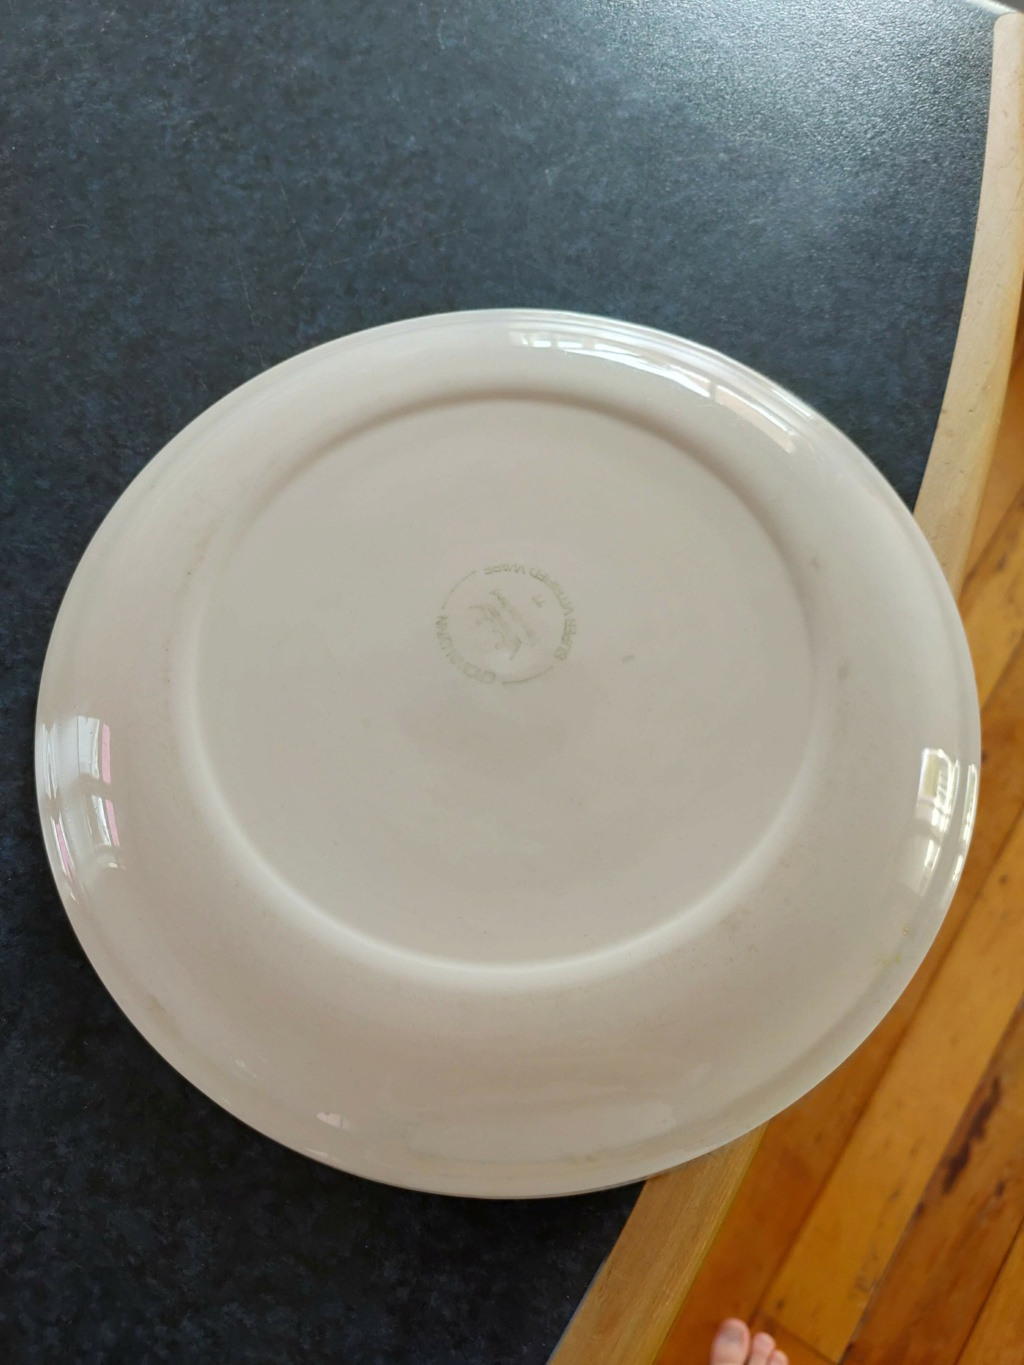 Seemingly an Air NZ plate - Unable to find any details about it. Img20212